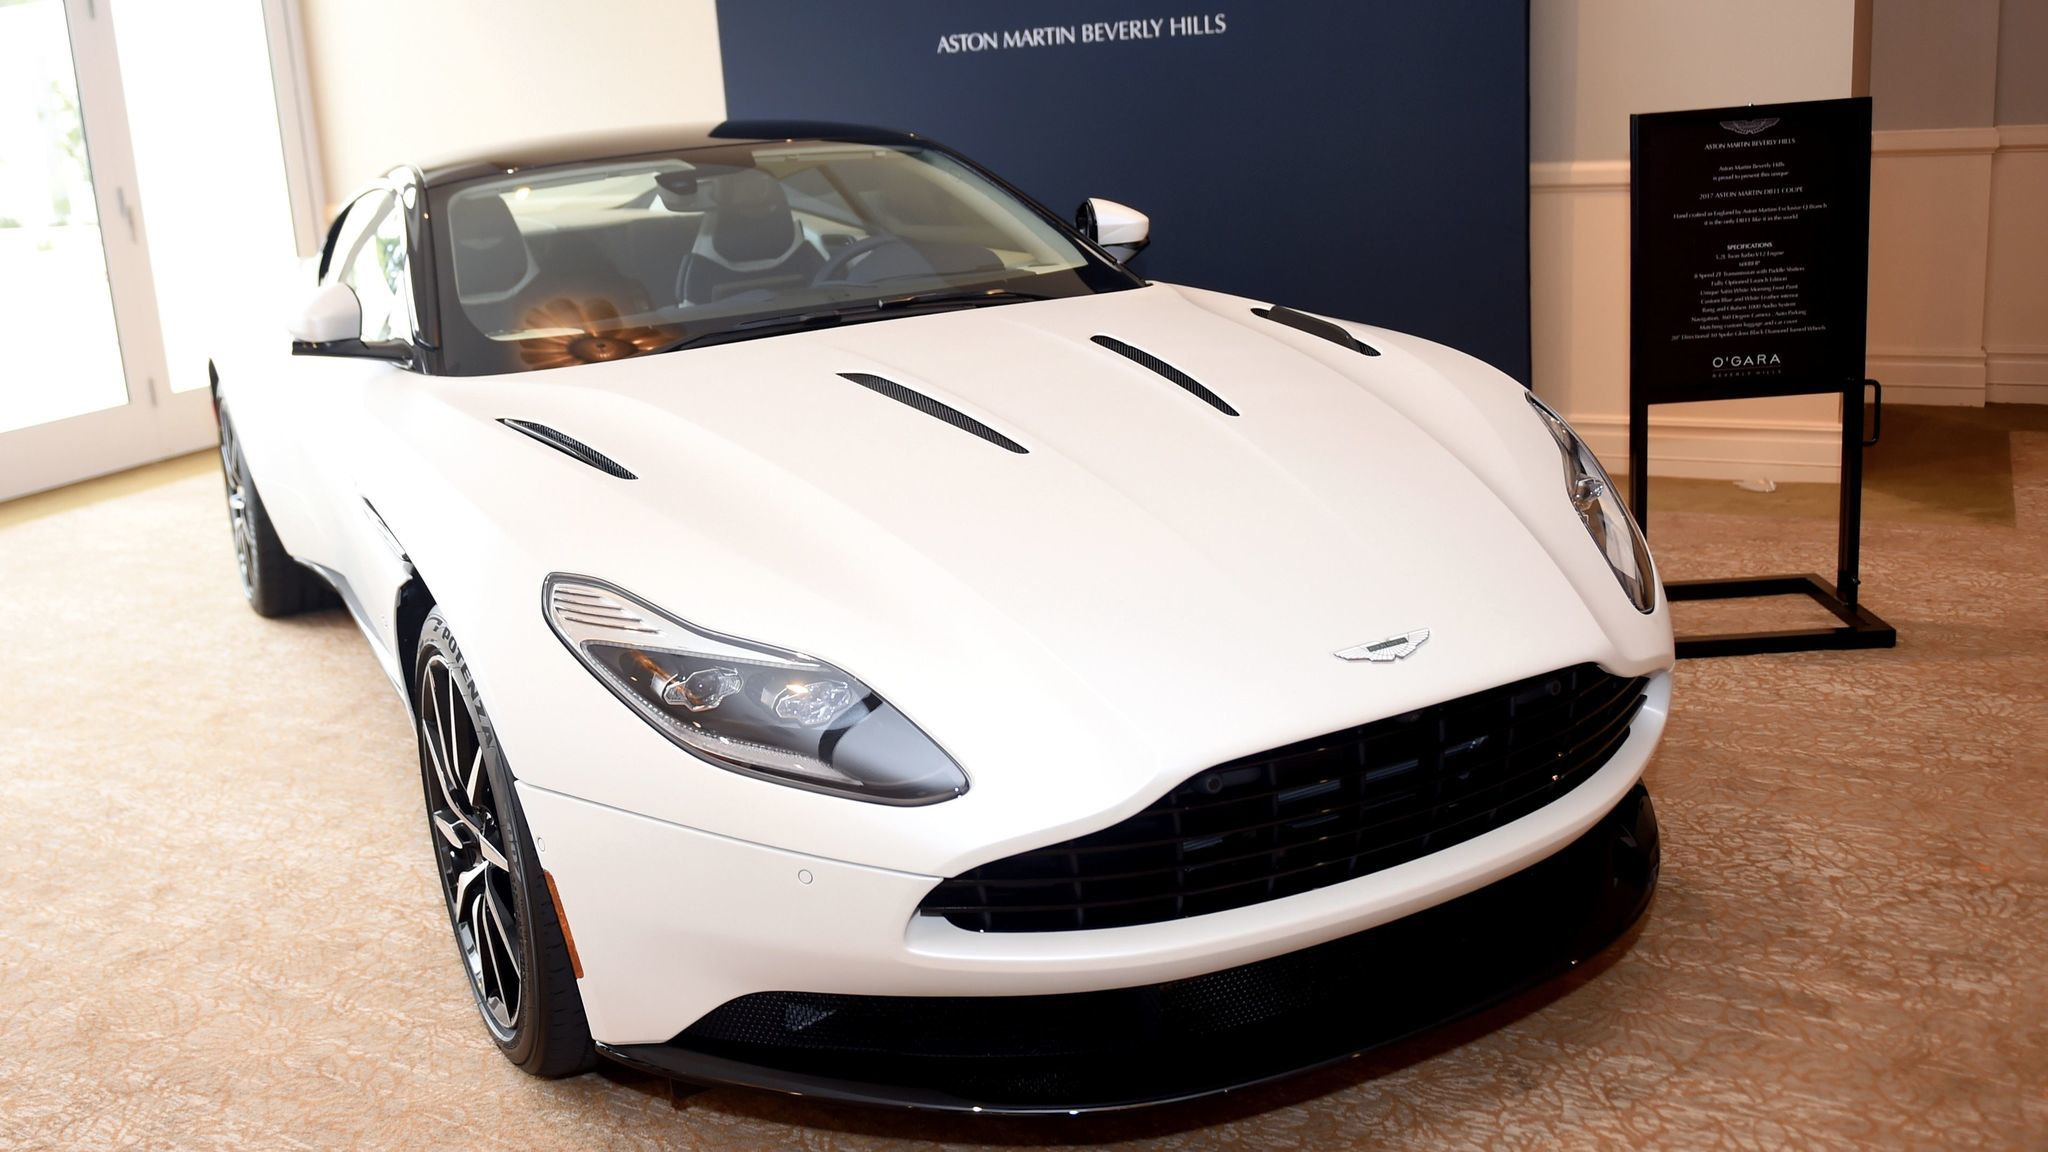 Among the items for sale at the silent auction were an Aston Martin DB11 Coupe.